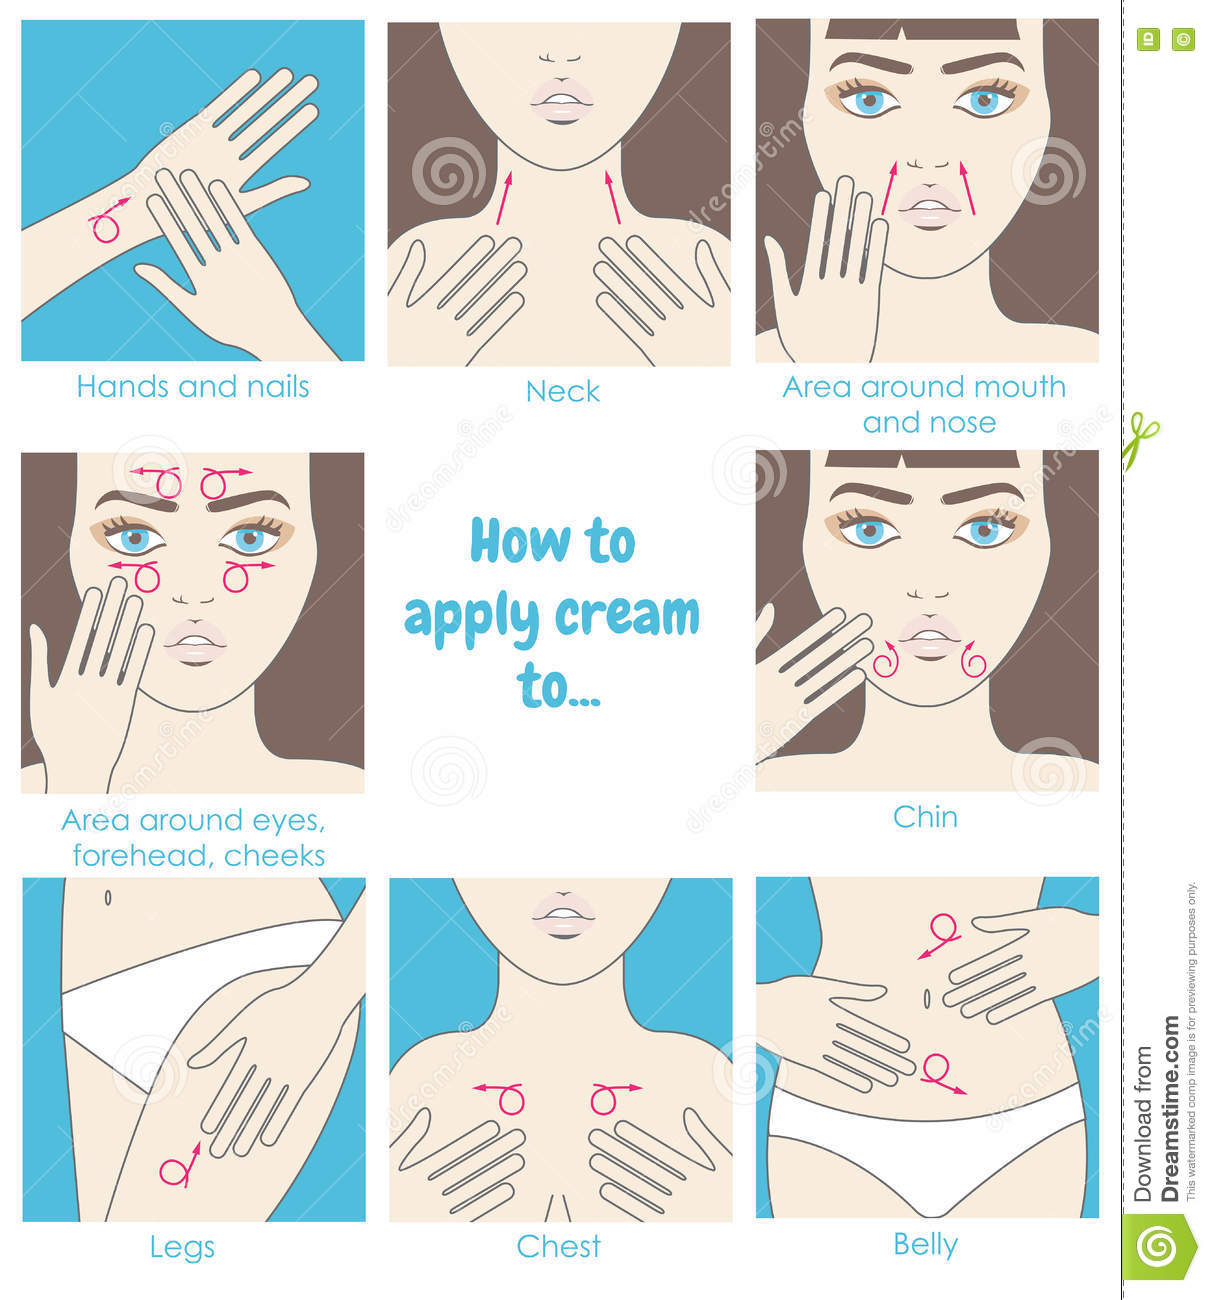 How To Apply Cream To The Face Neck Hands Belly Legs Design